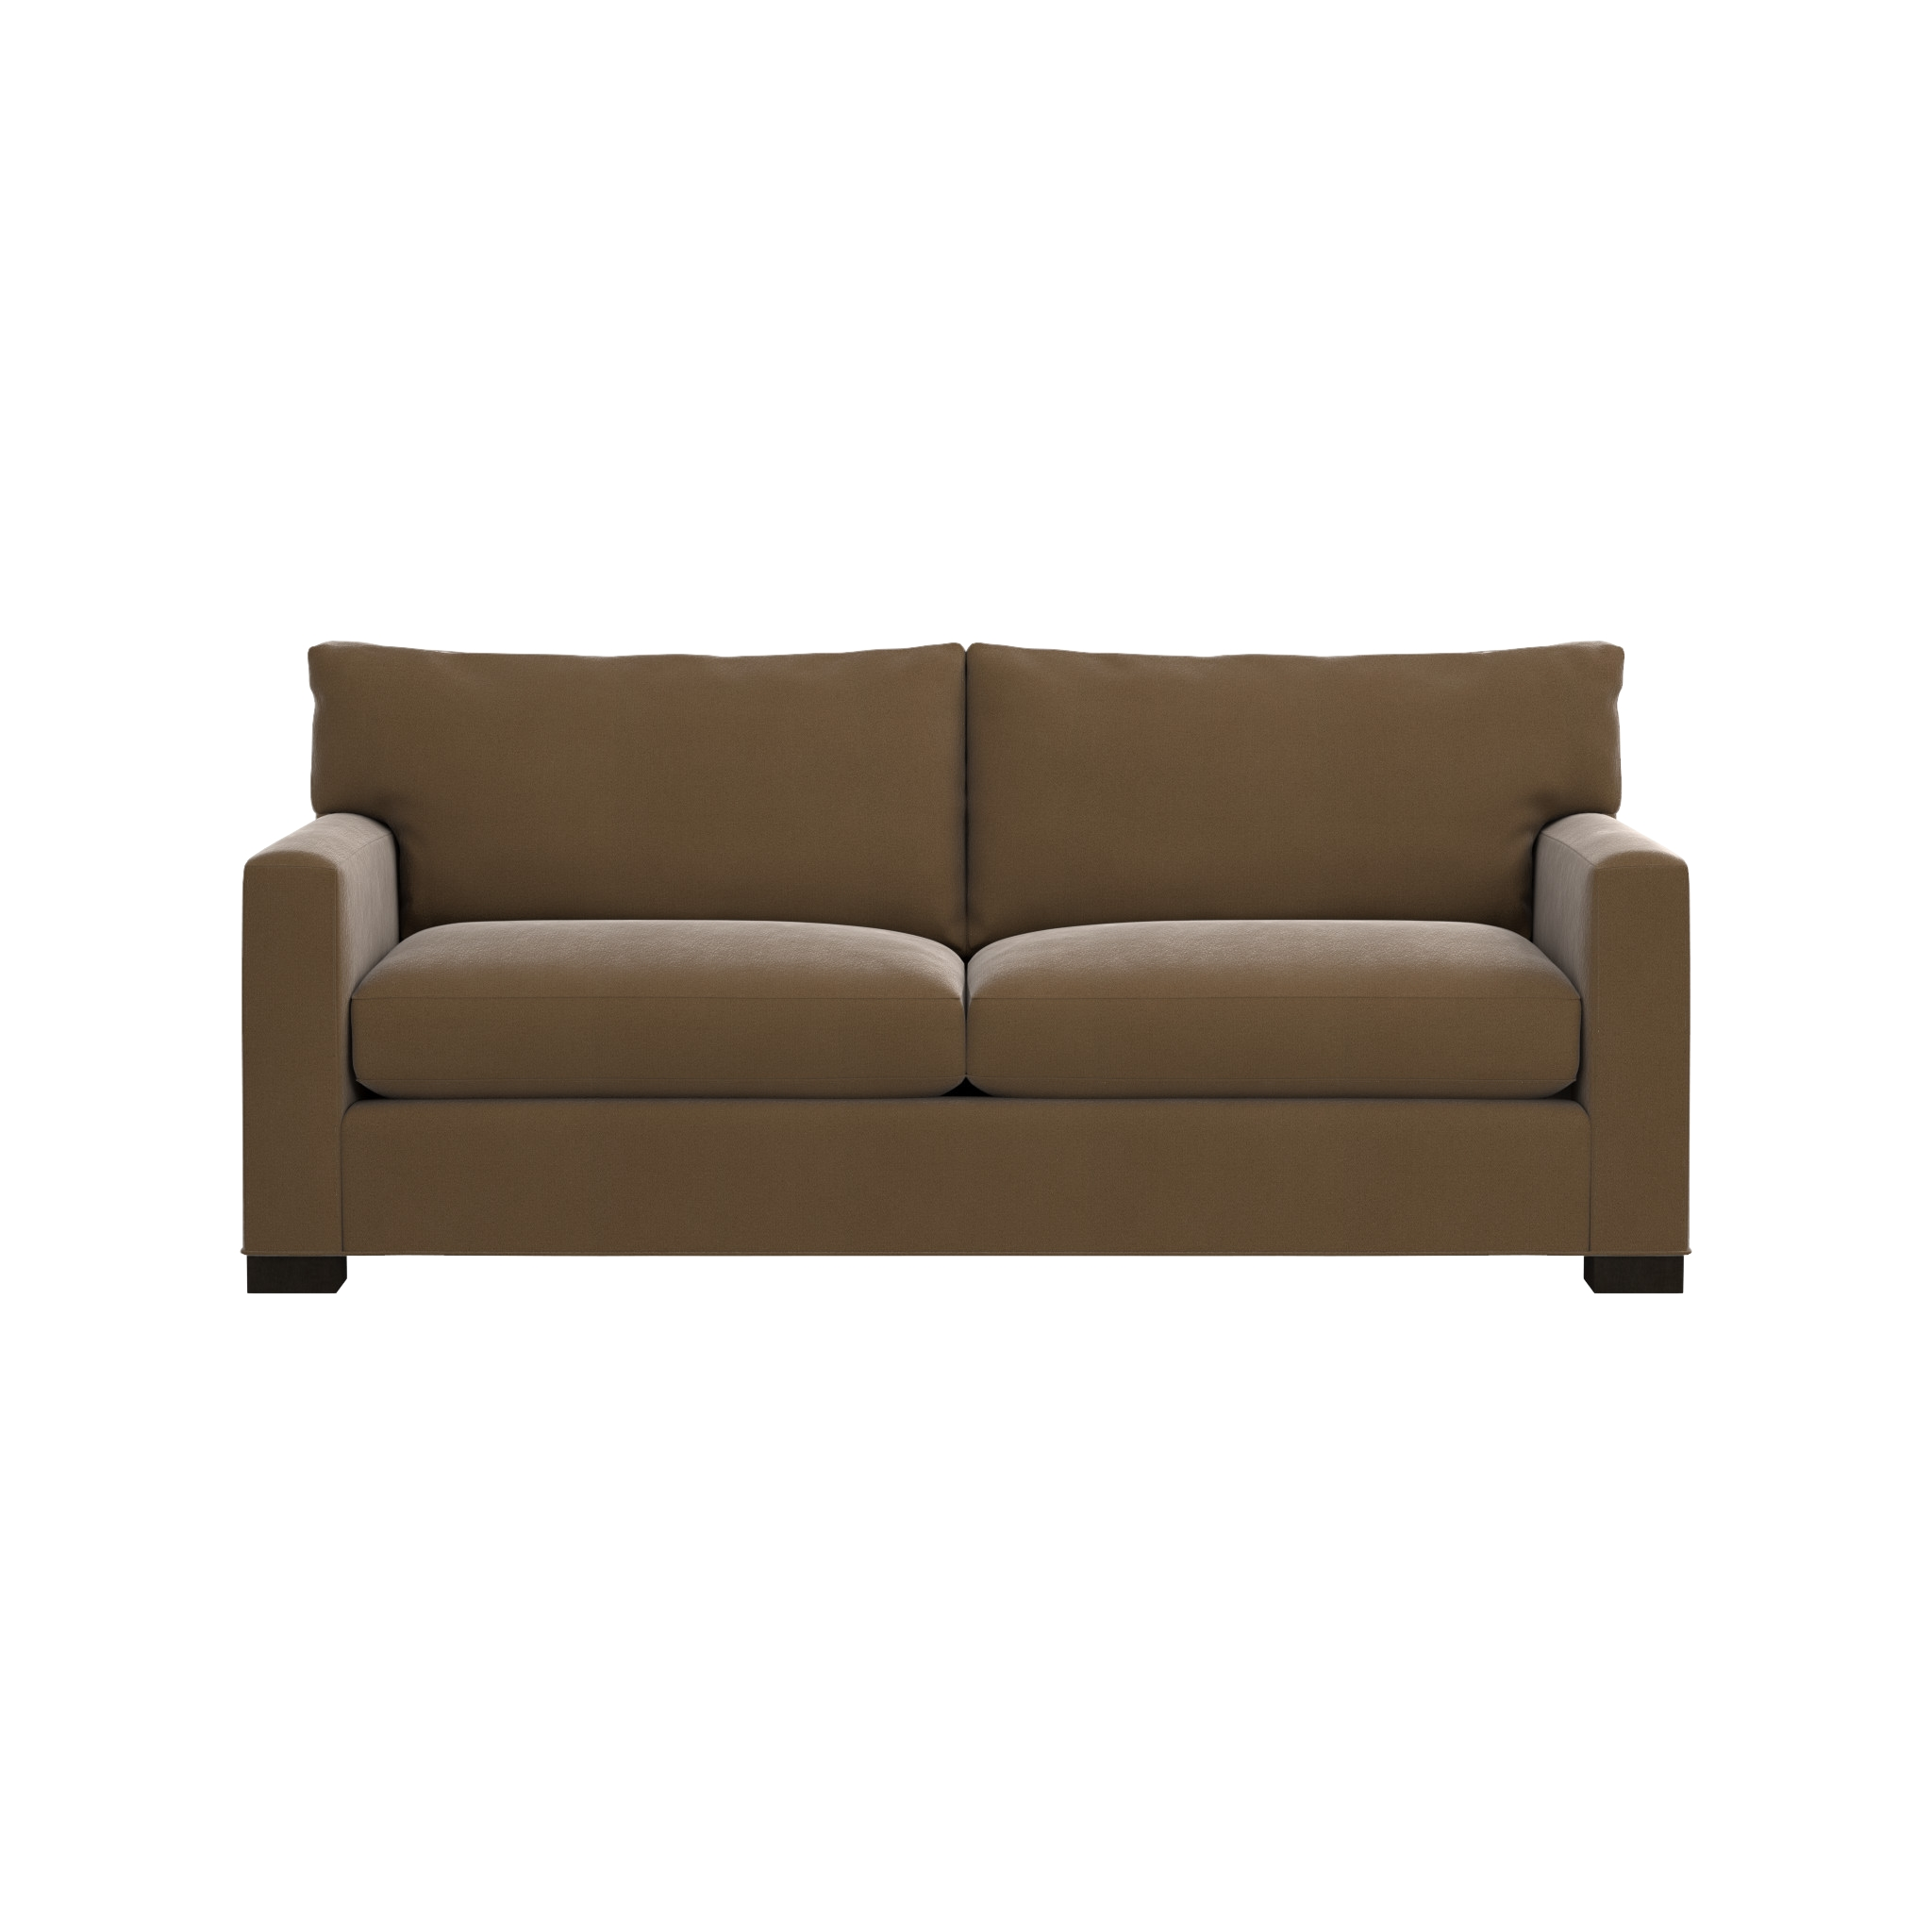 Axis Ii 2 Seater Brown Microfiber Sofa | Crate And Barrel Regarding Sectional Crate And Barrel (Image 10 of 20)